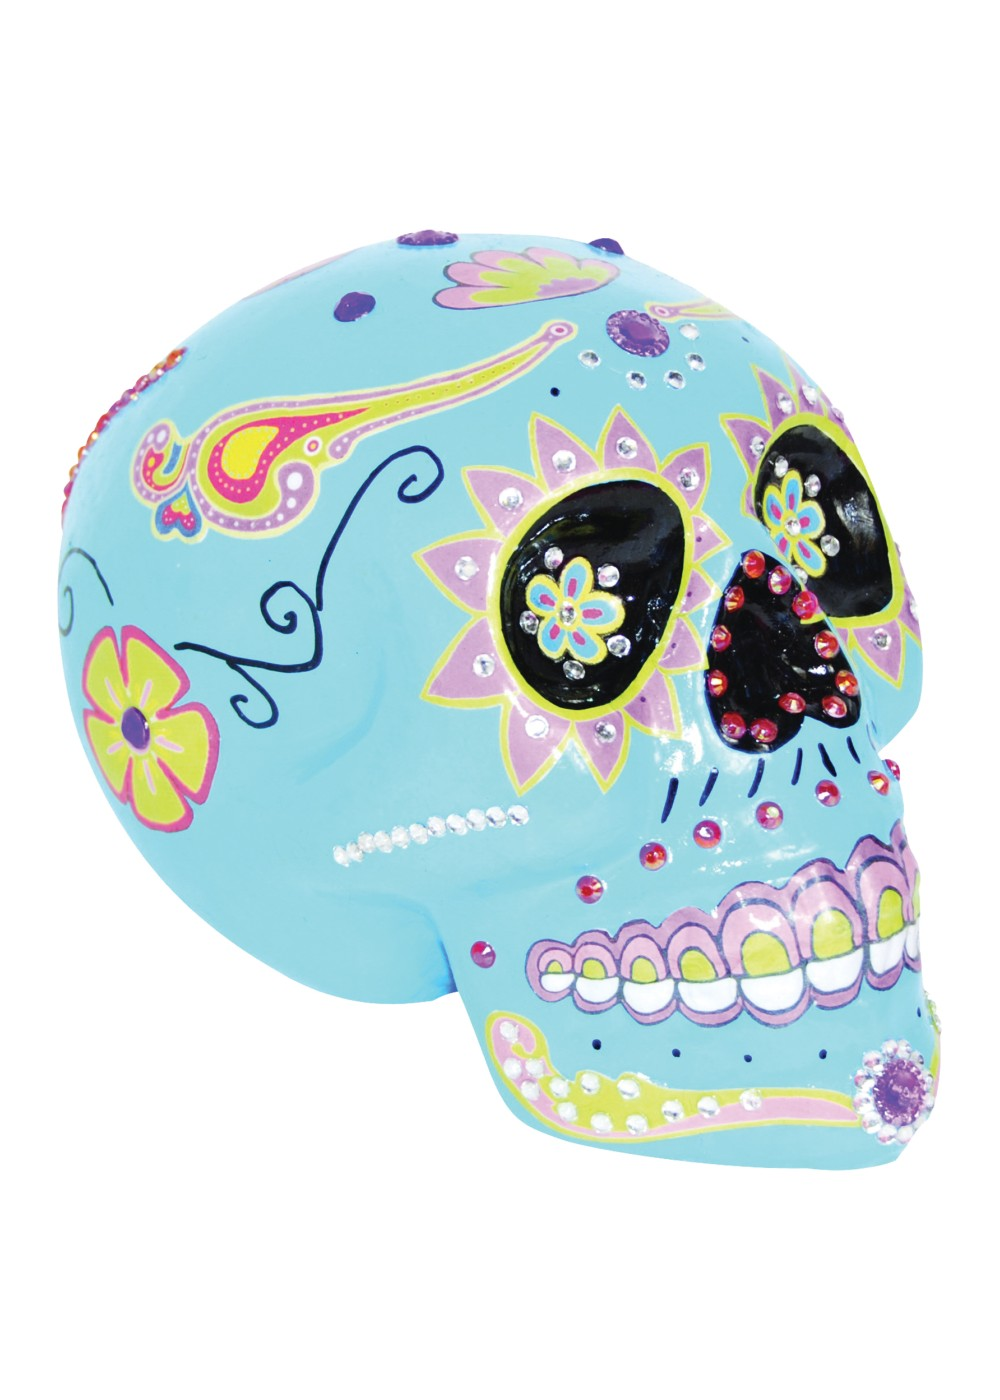 Day of the Dead Sugar Skull Decoration - Decorations